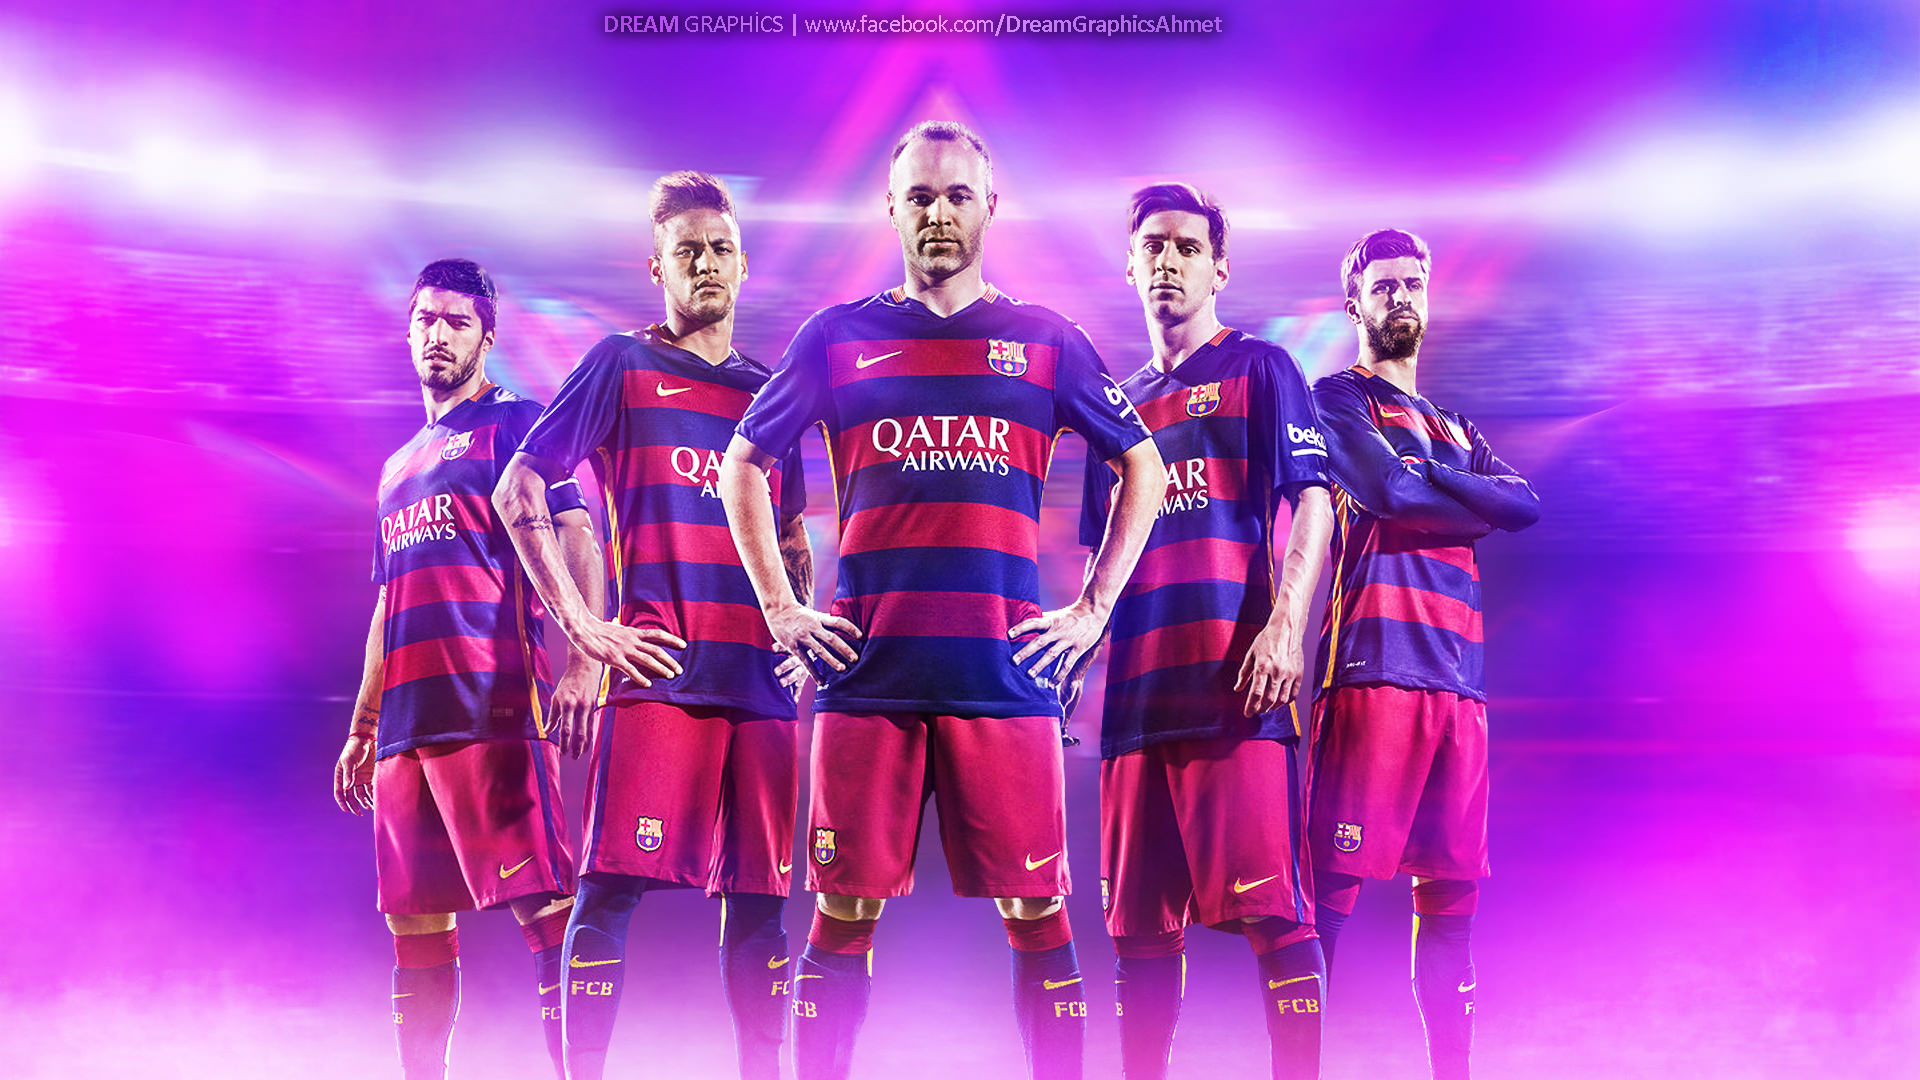 FC Barcelona 20152016 Wallpaper   Football Wallpapers HD 1920x1080